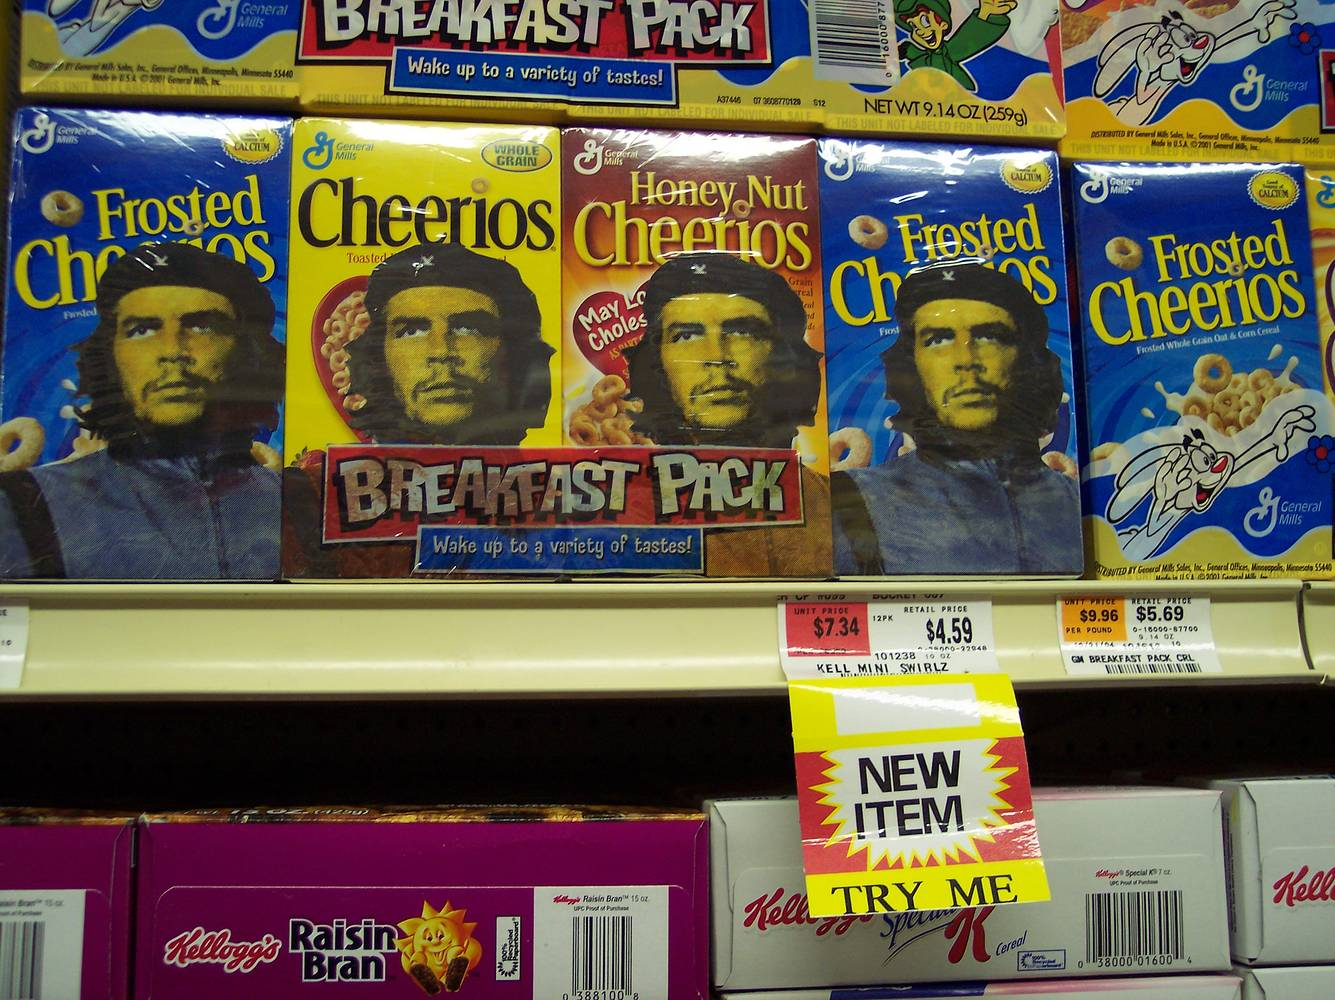 Che-erios Breakfast Pack by El Celso